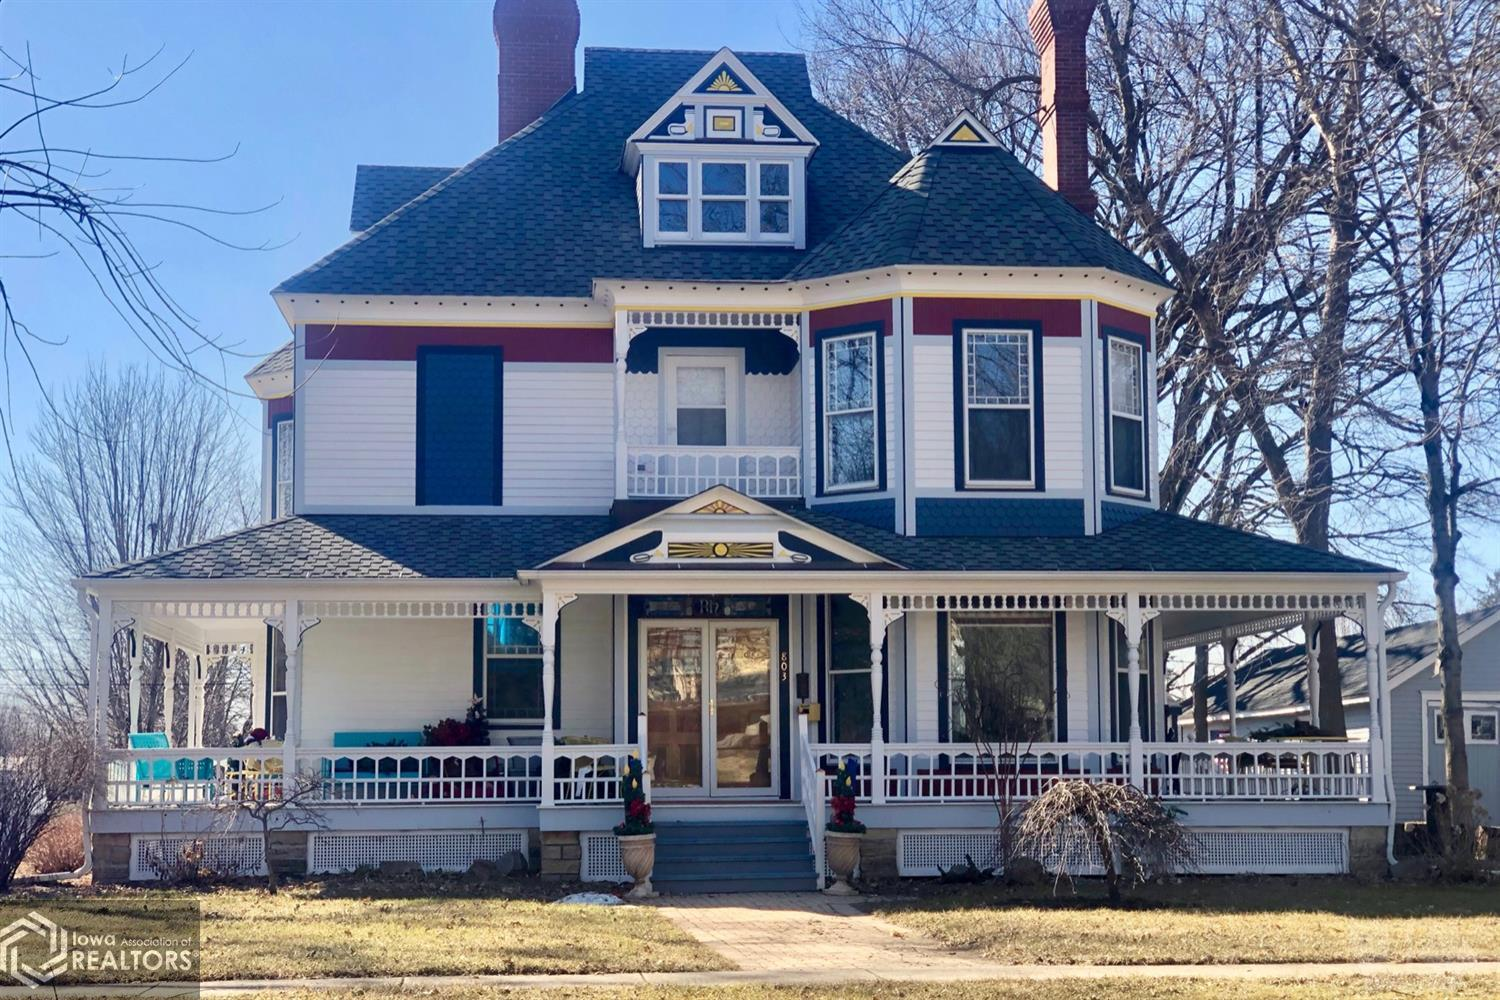 803 High, Grinnell, Iowa 50112, 3 Bedrooms Bedrooms, ,2 BathroomsBathrooms,Single Family,For Sale,High,5564464